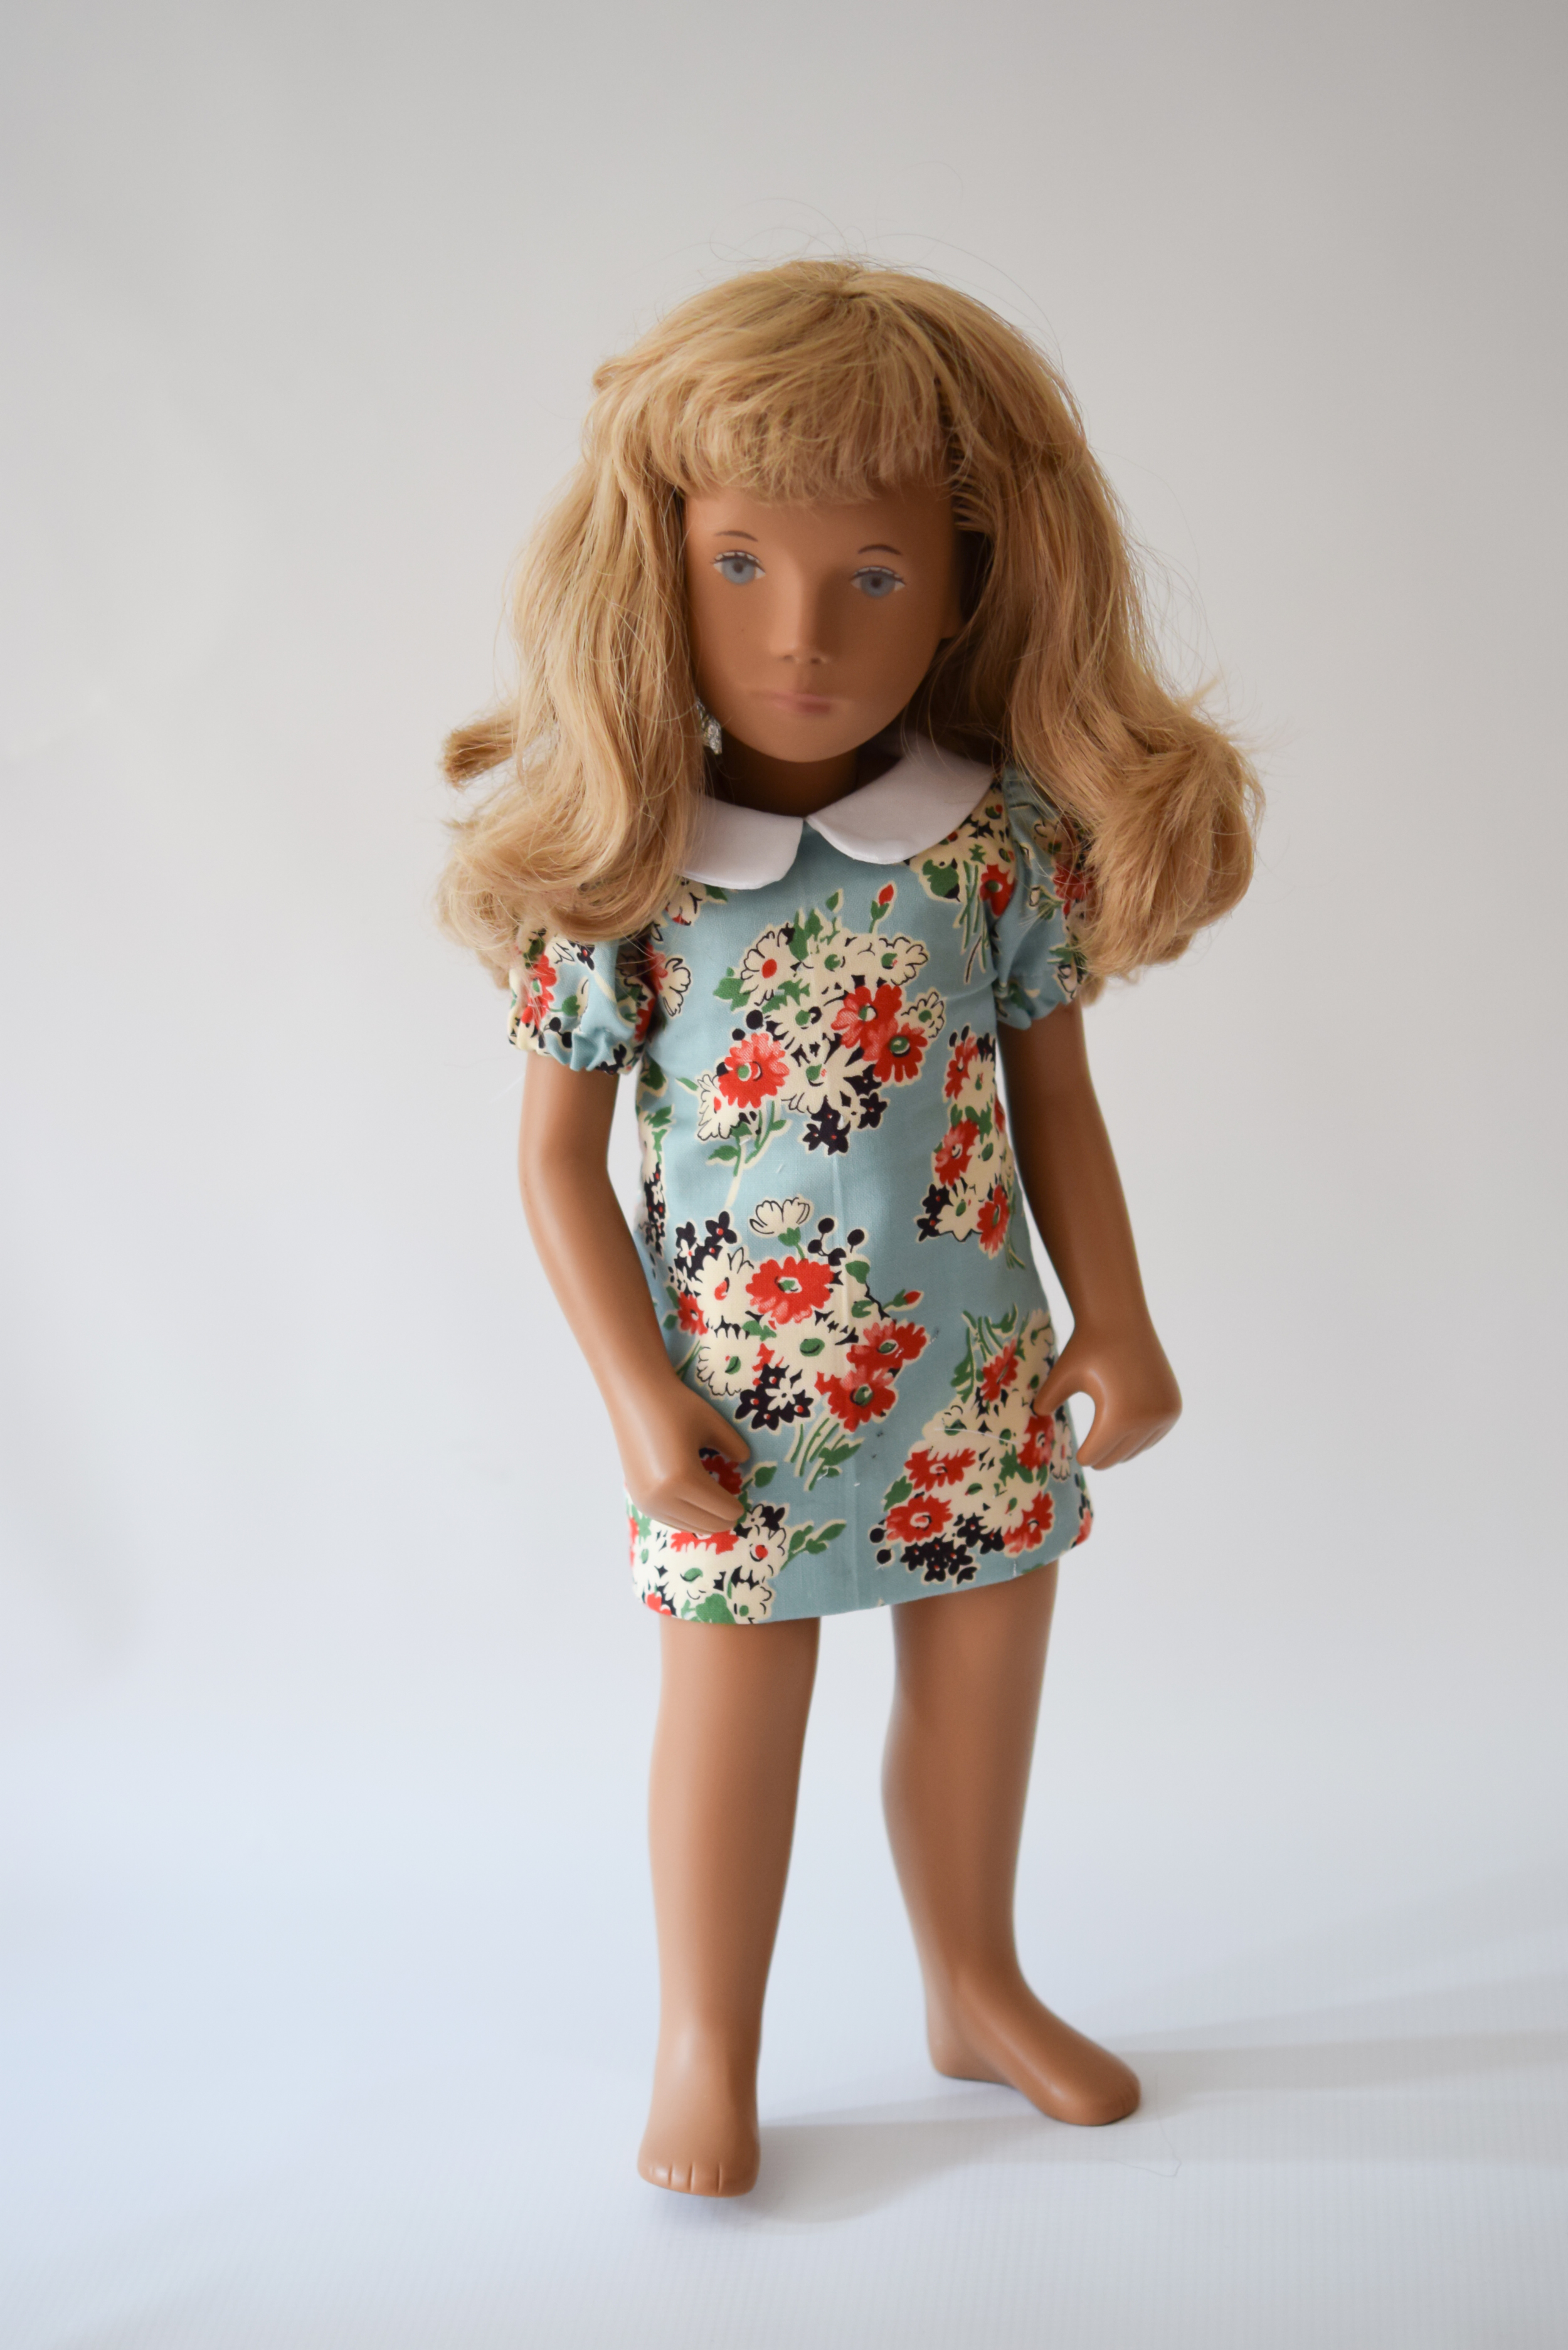 One of the many dresses you can create with the pattern set